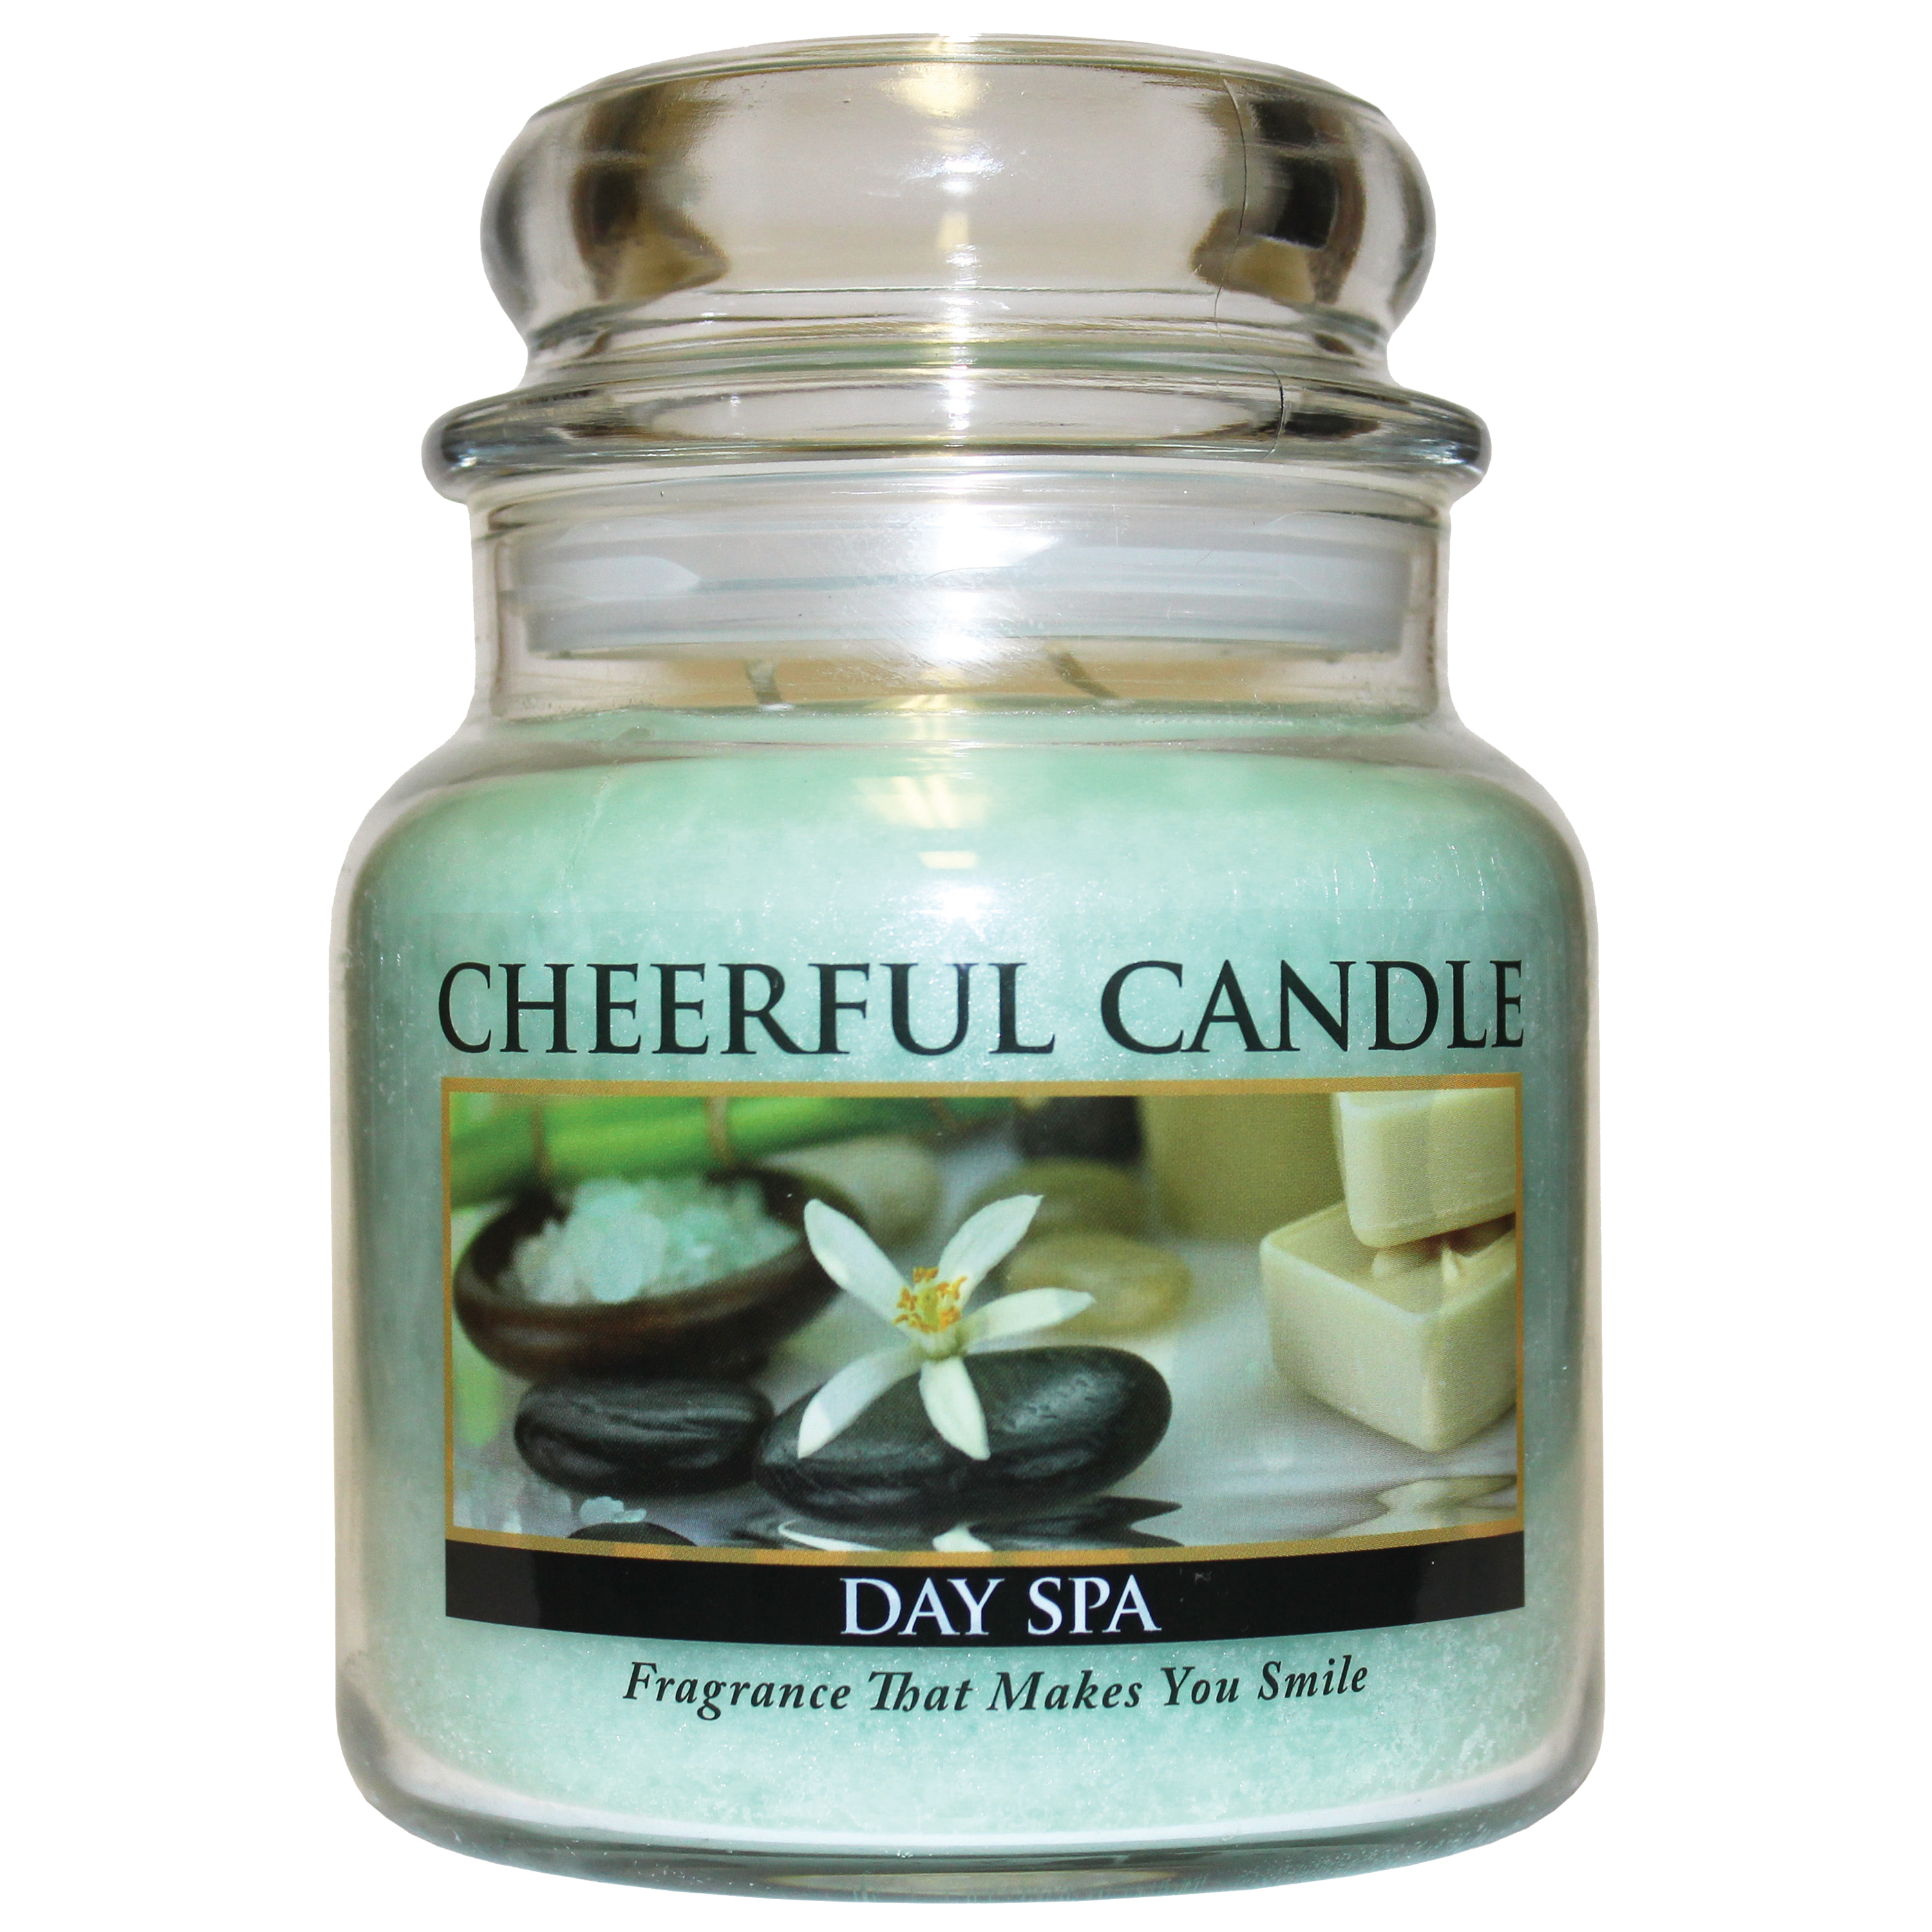 Day Spa Cheerful Candles